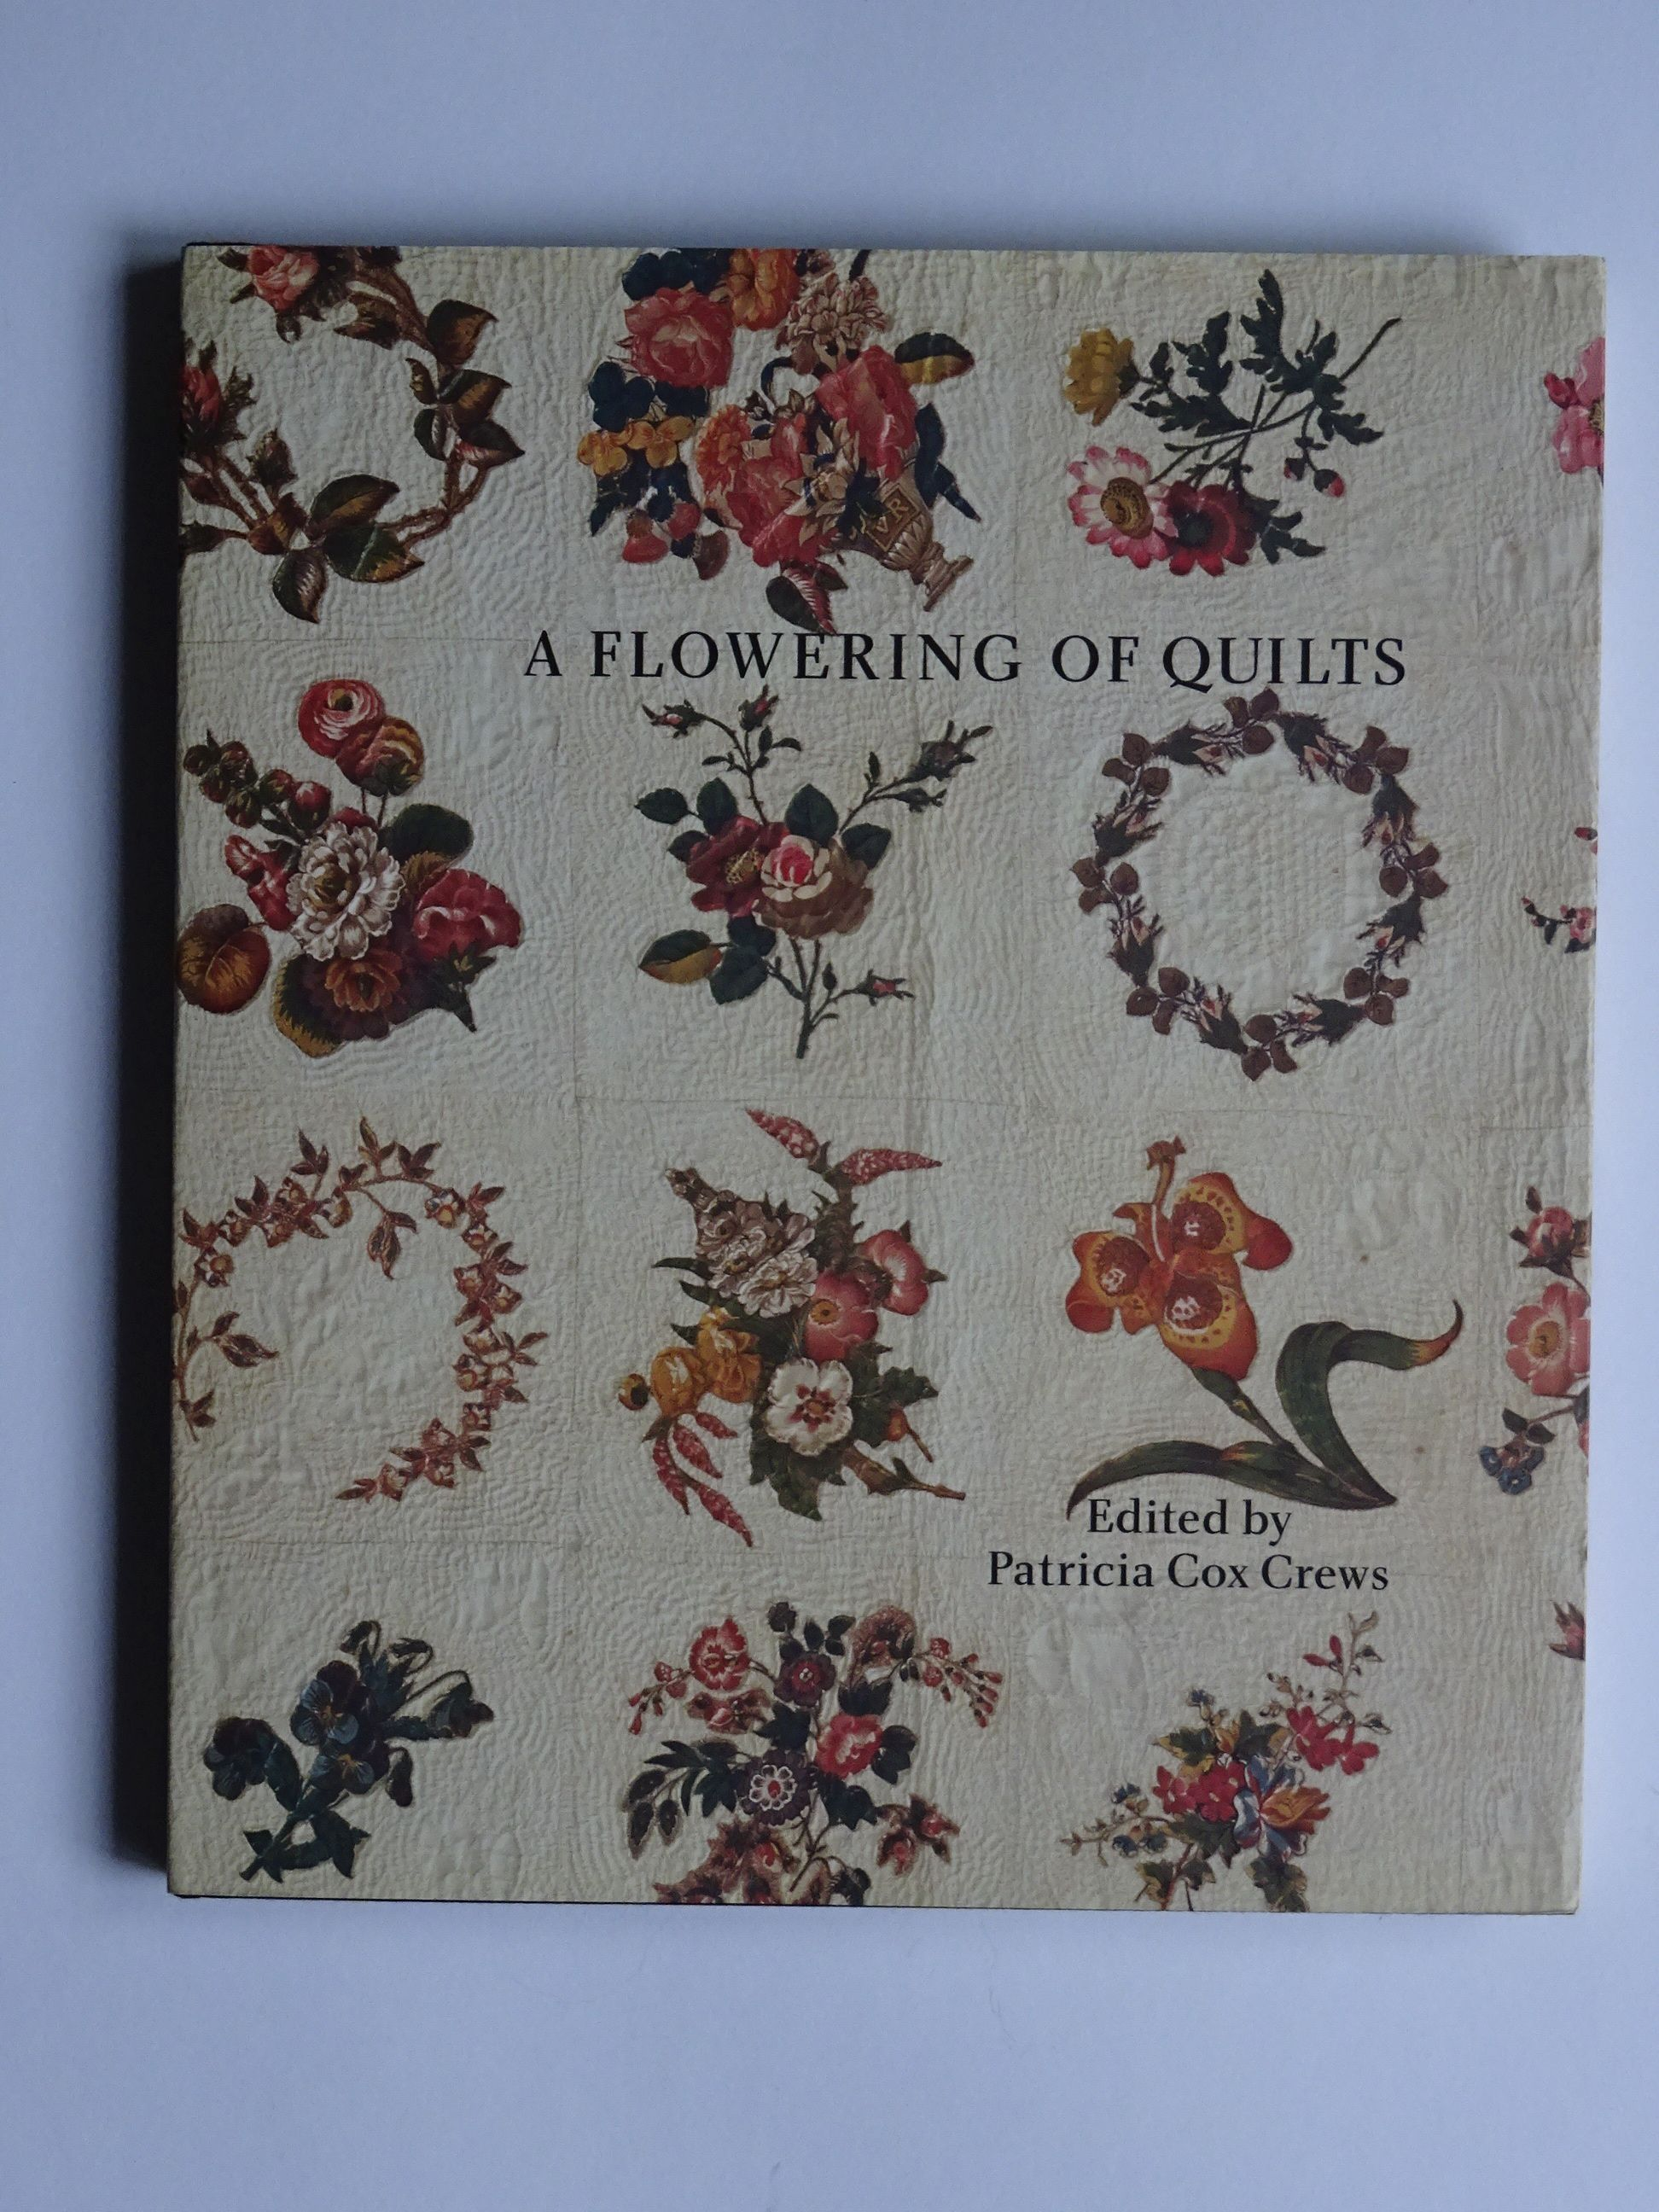 ed. Crews, Patricia Cox - A Flowering of Quilts